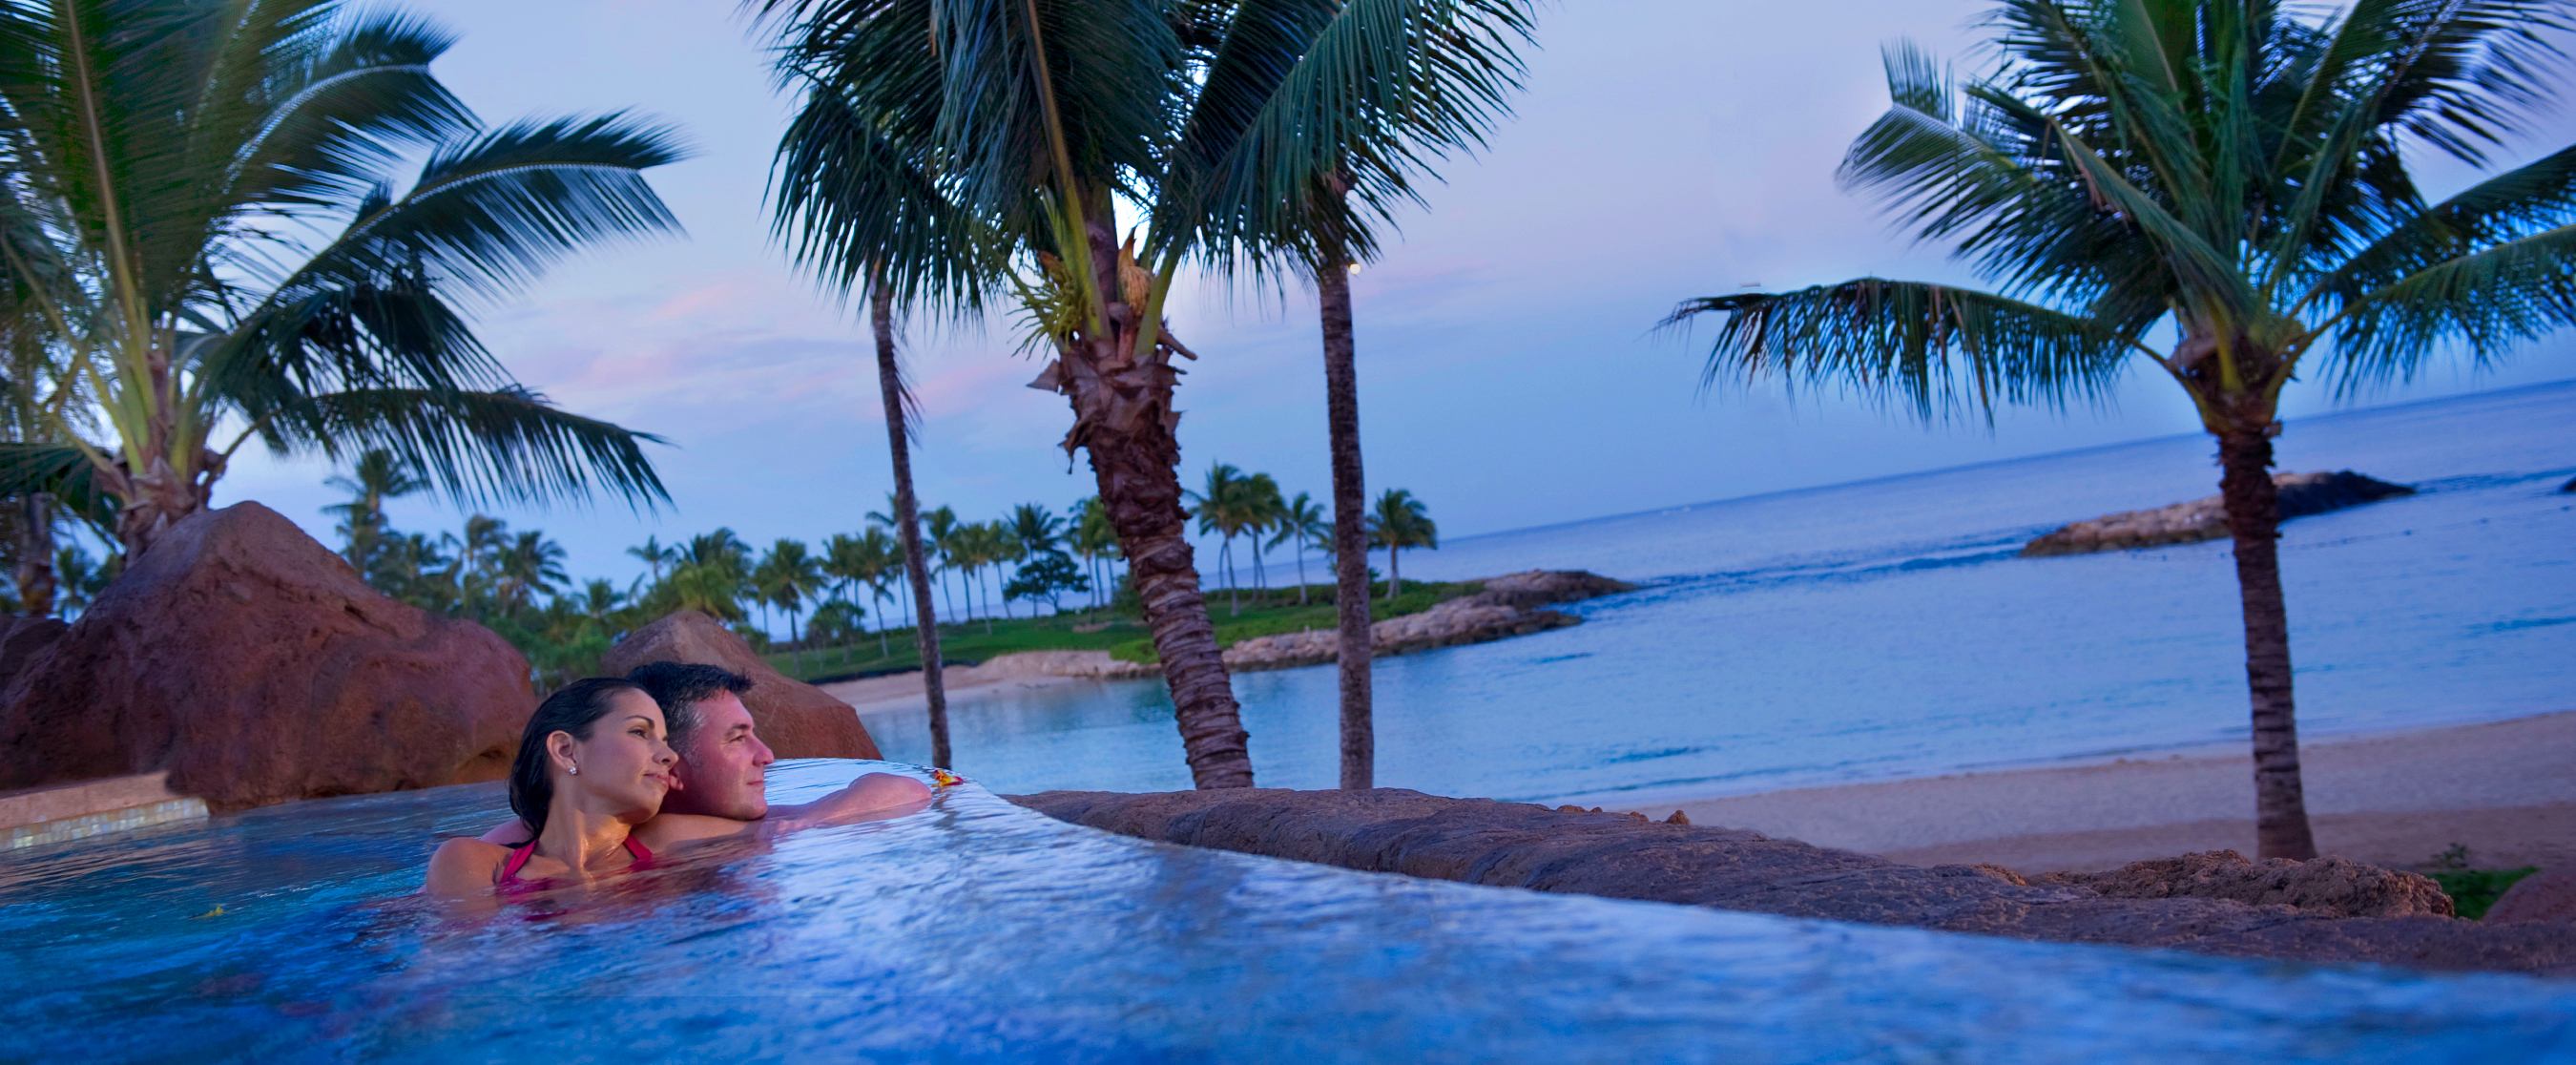 With the beachfront in the background, a couple lounges together in the adults only whirlpool spa at Alohi Point of Aulani Resort and Spa